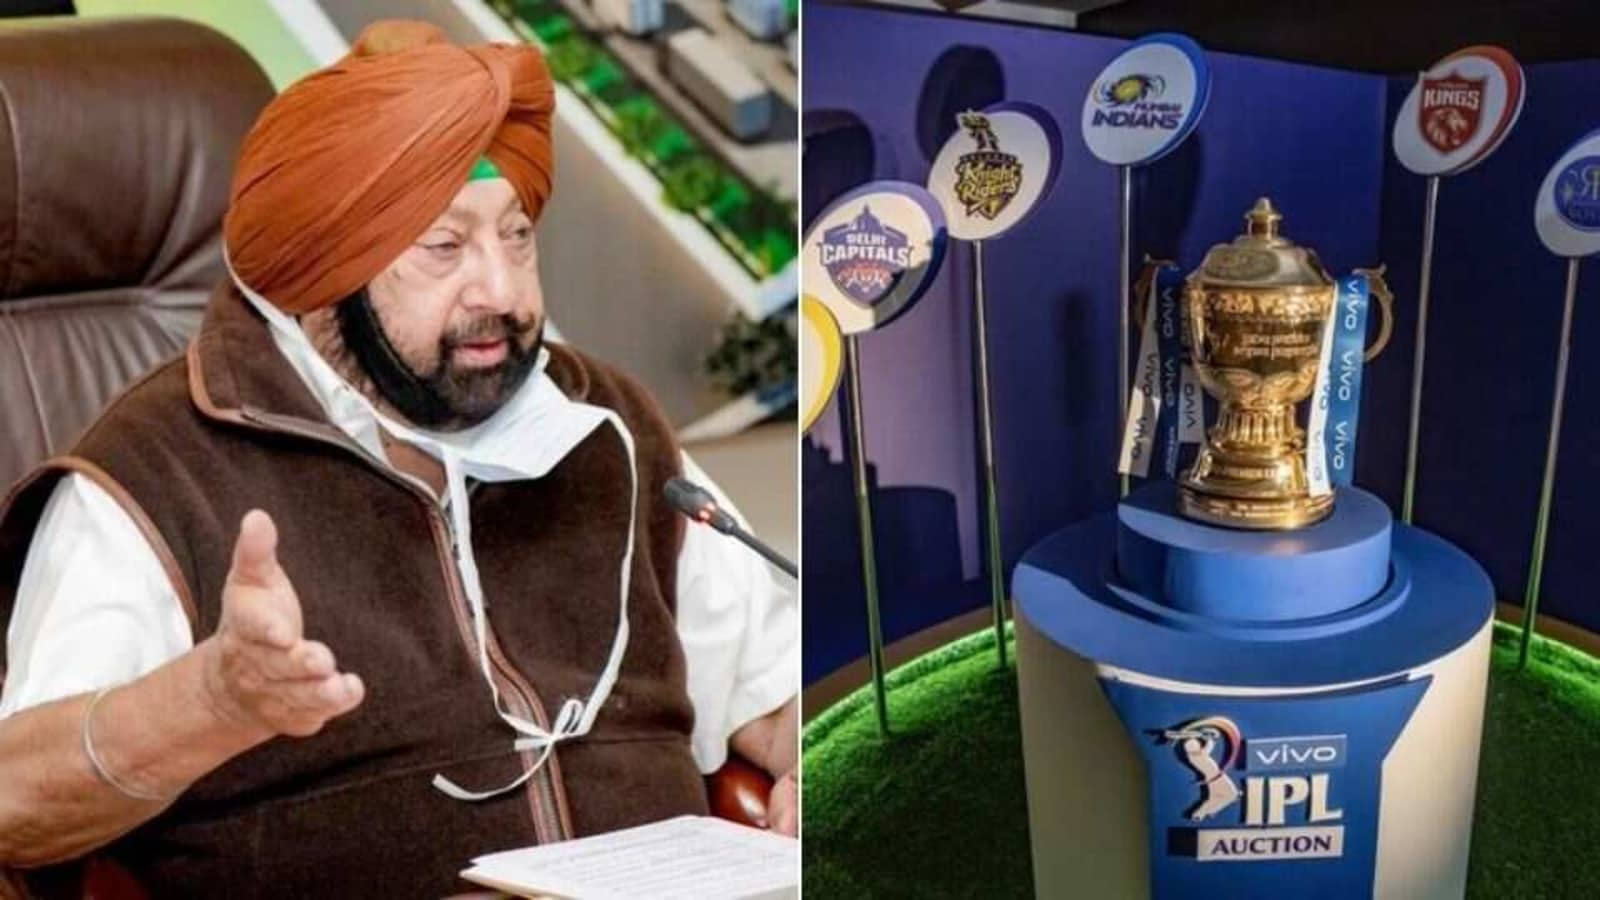 Surprised at exclusion of Mohali for IPL, want BCCI to reconsider decision: Punjab CM - Hindustan Times